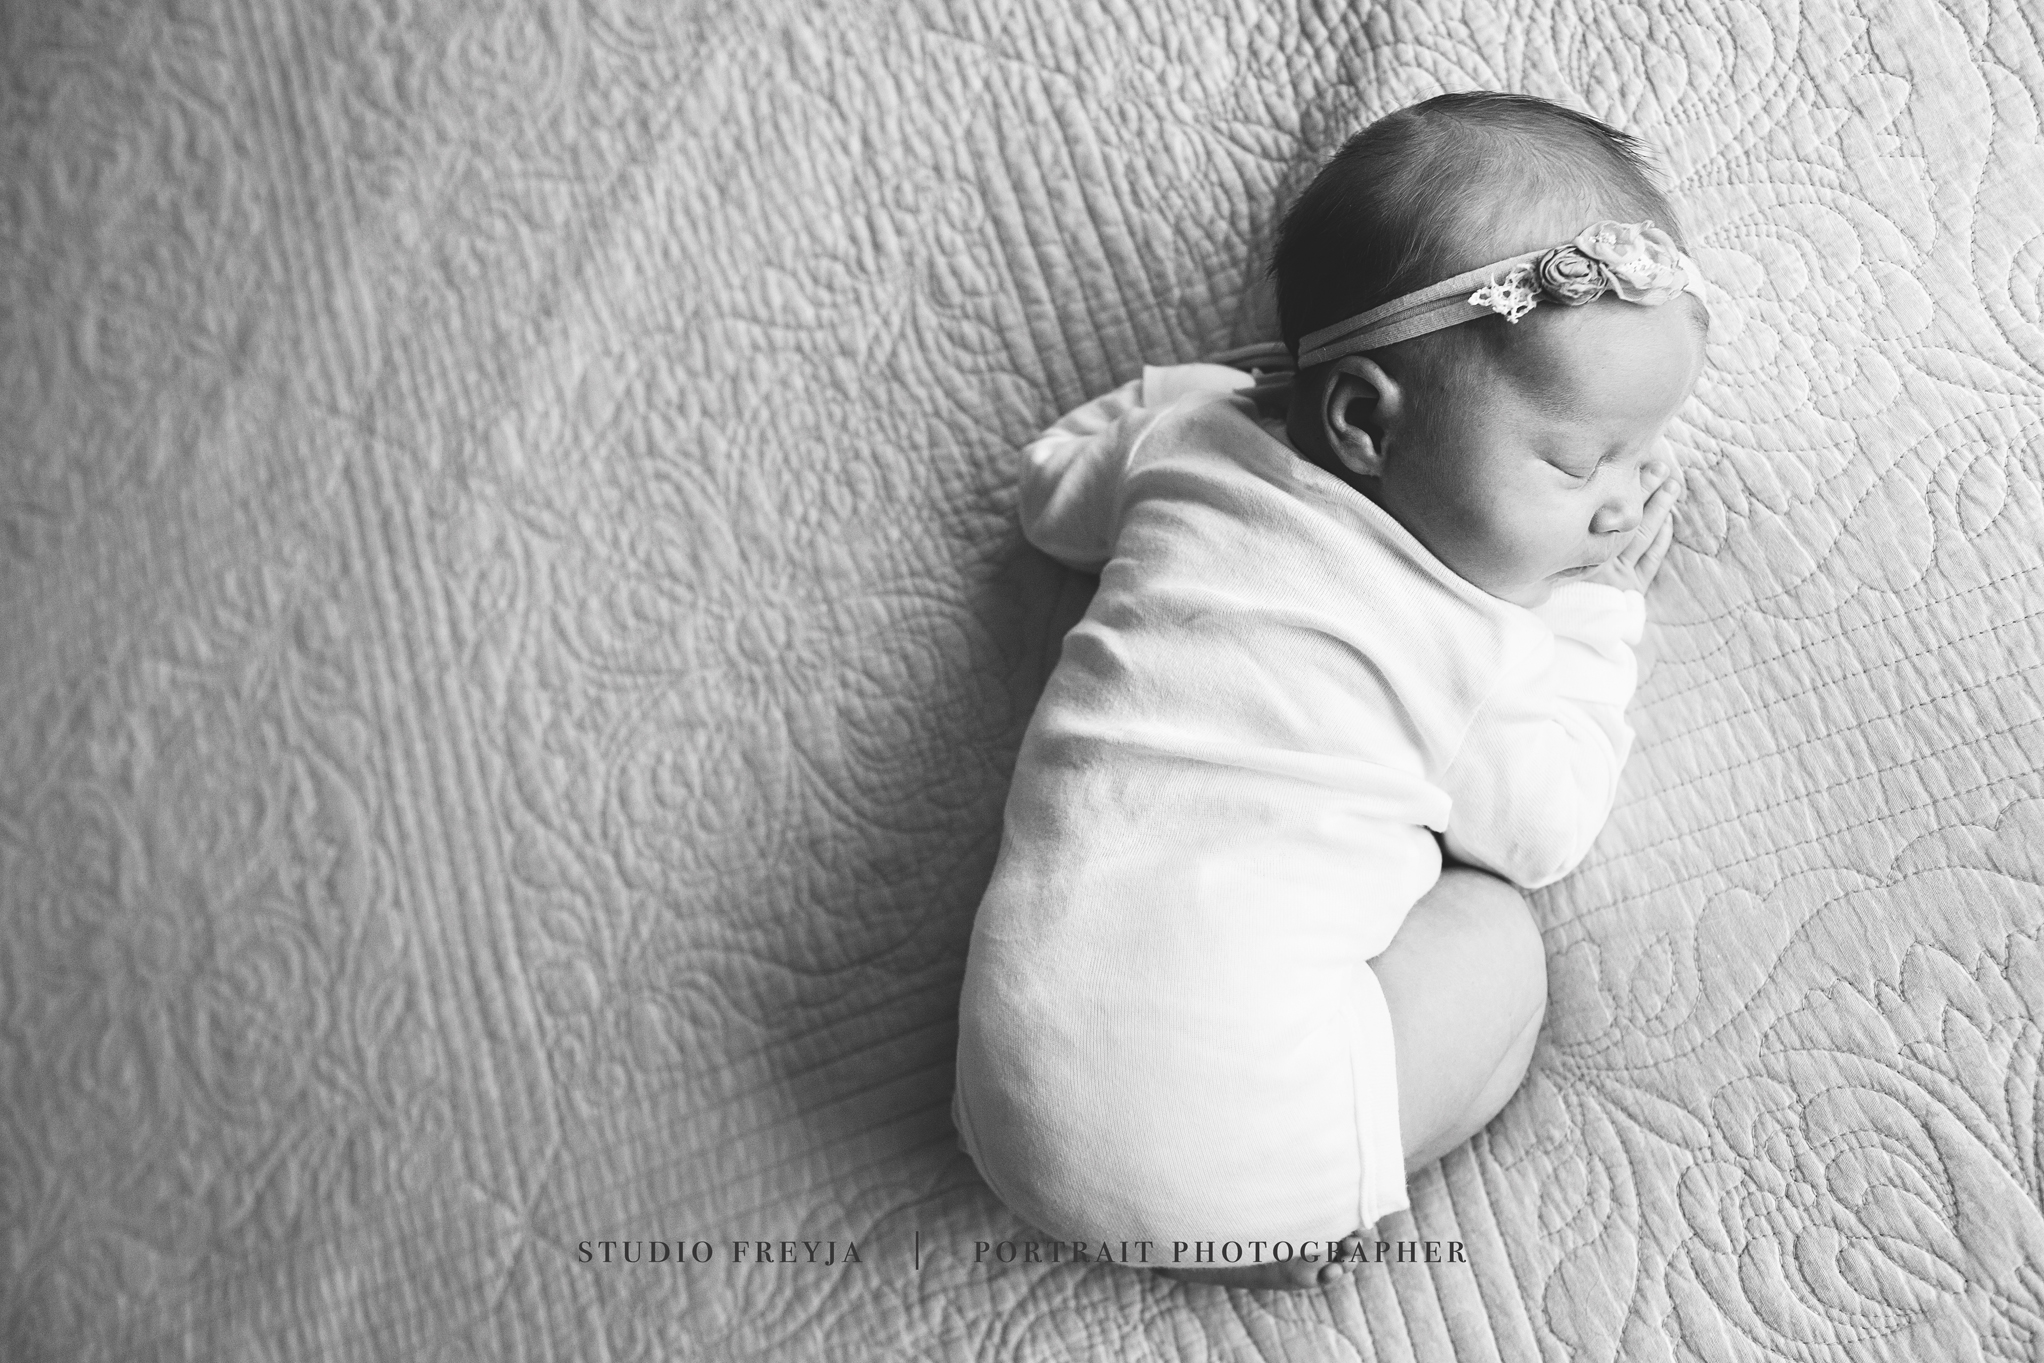 Vivan Newborn Session Copyright Studio Freyja-69.jpg